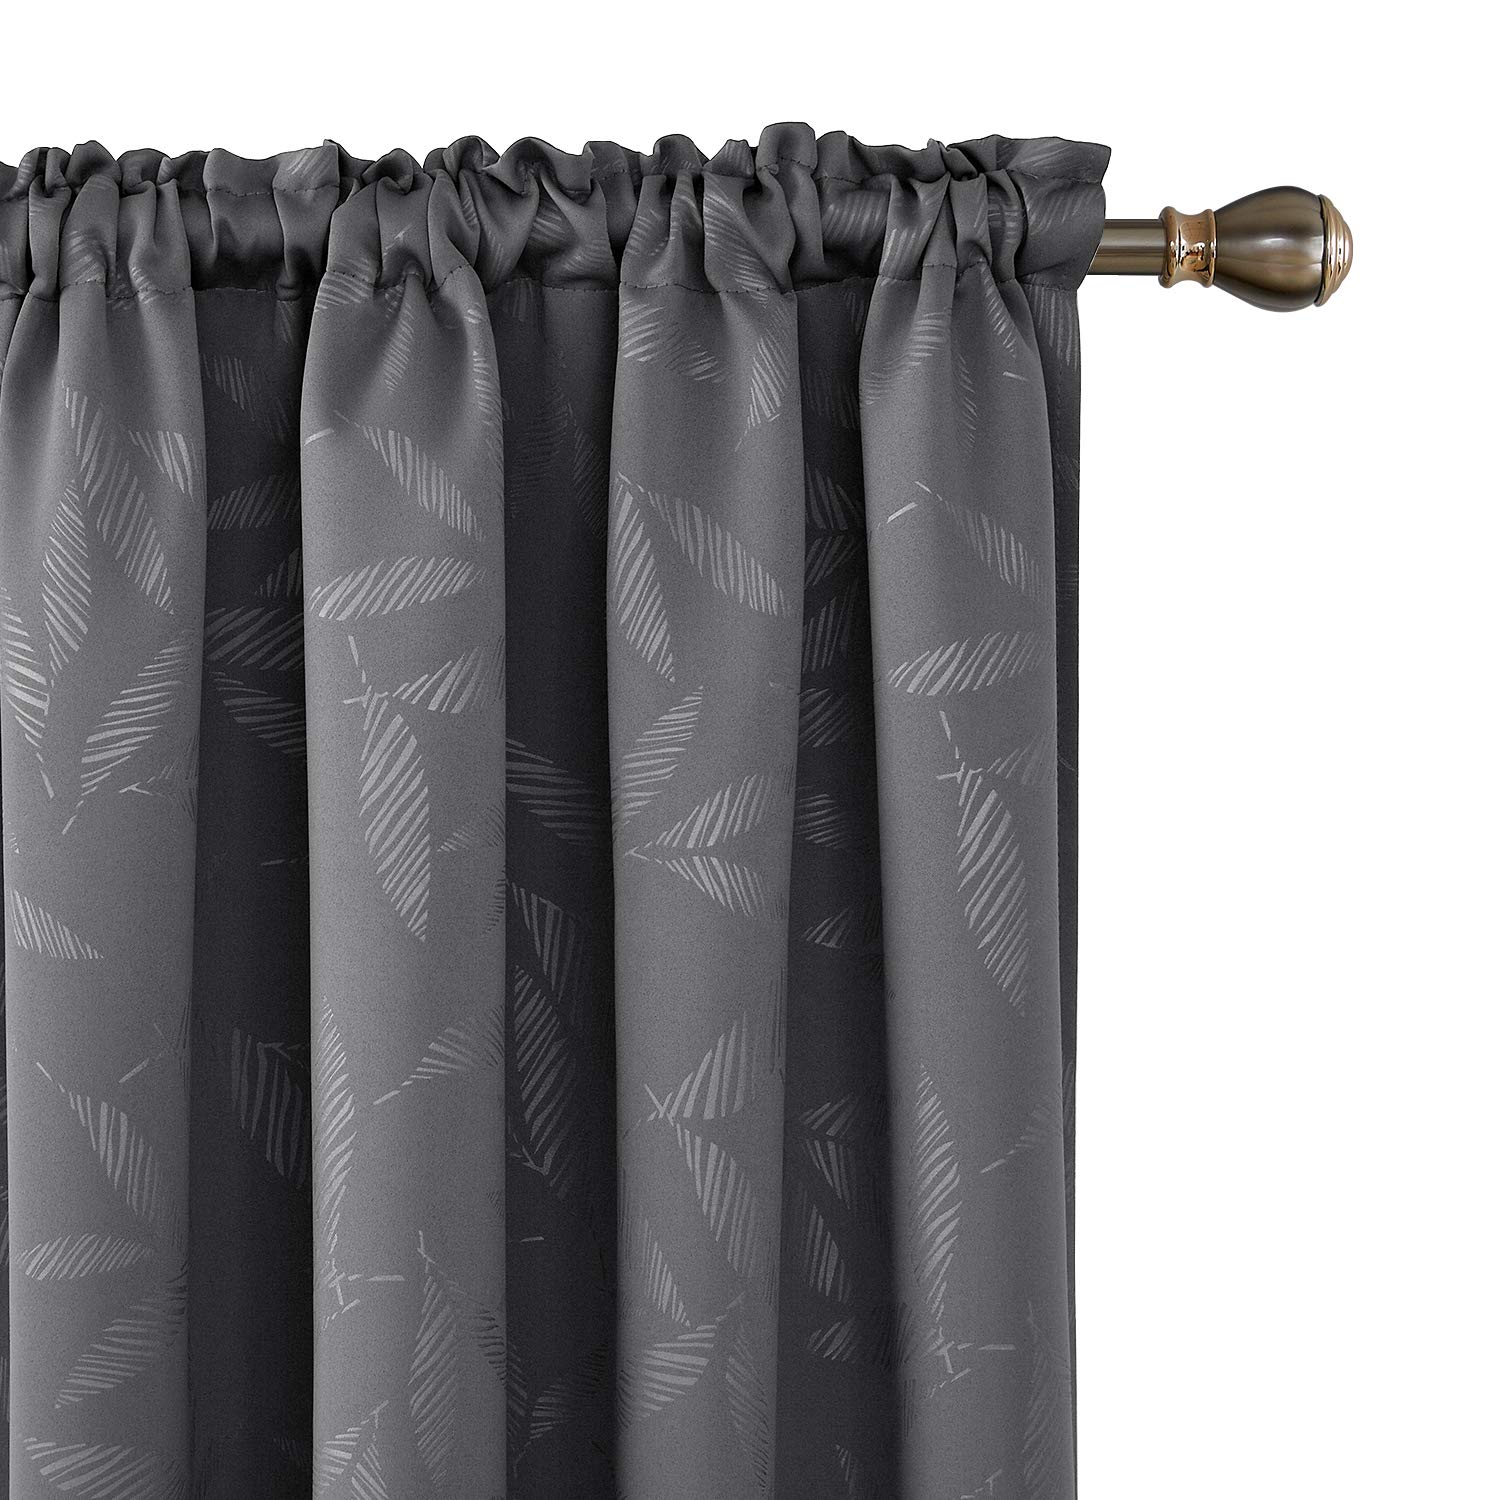 Deconovo Decorative Bamboo Leaf Blackout Curtains Rod Pocket Texture Embossed Window Curtains for Kids Room 52W x 63L Inch Dark Grey 2 Panels